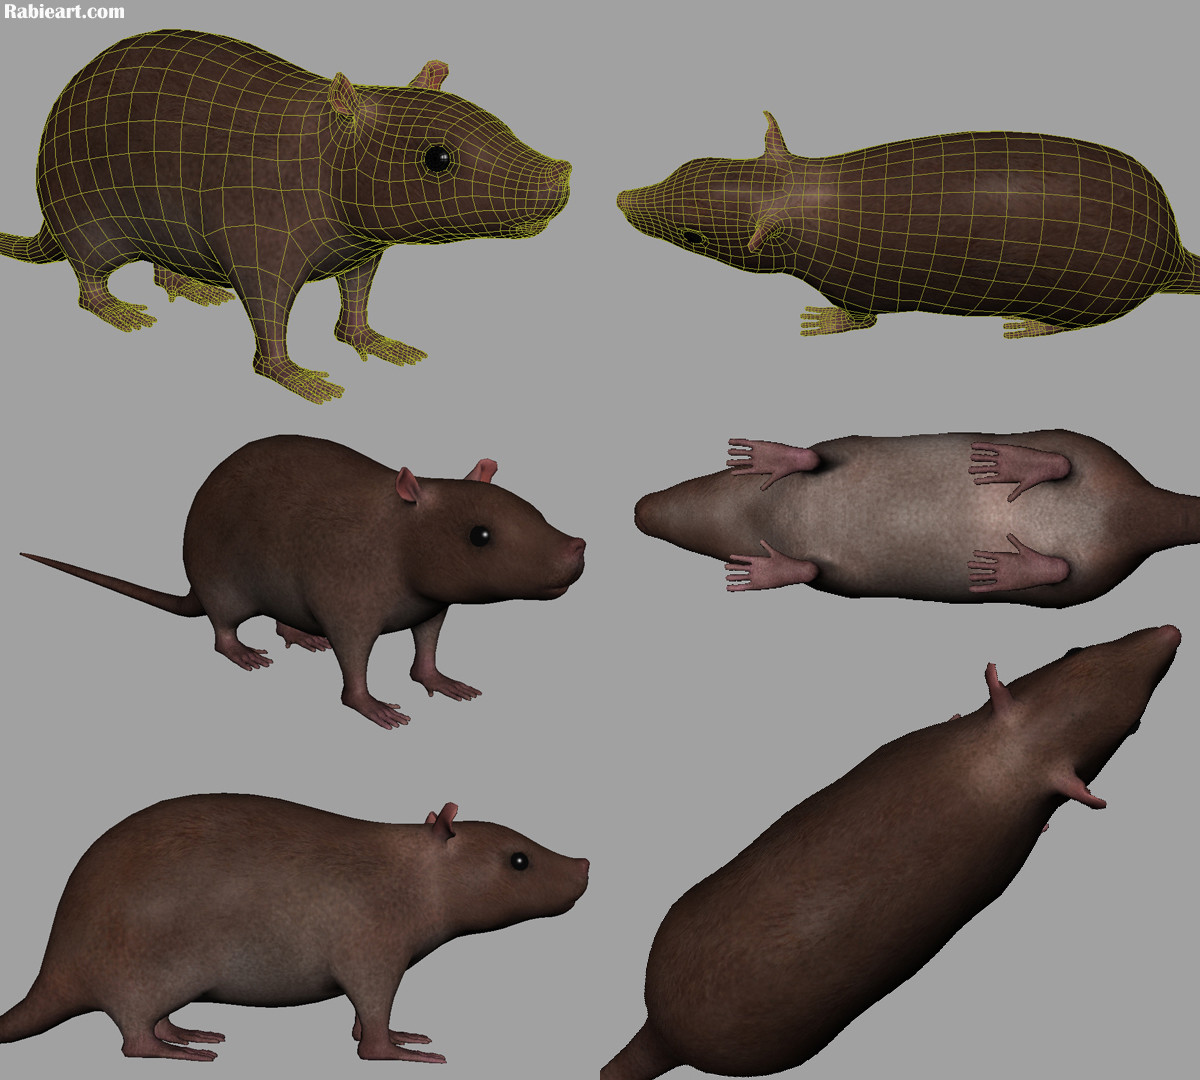 Mohamed aly rabie rabieart rat vfx project 2